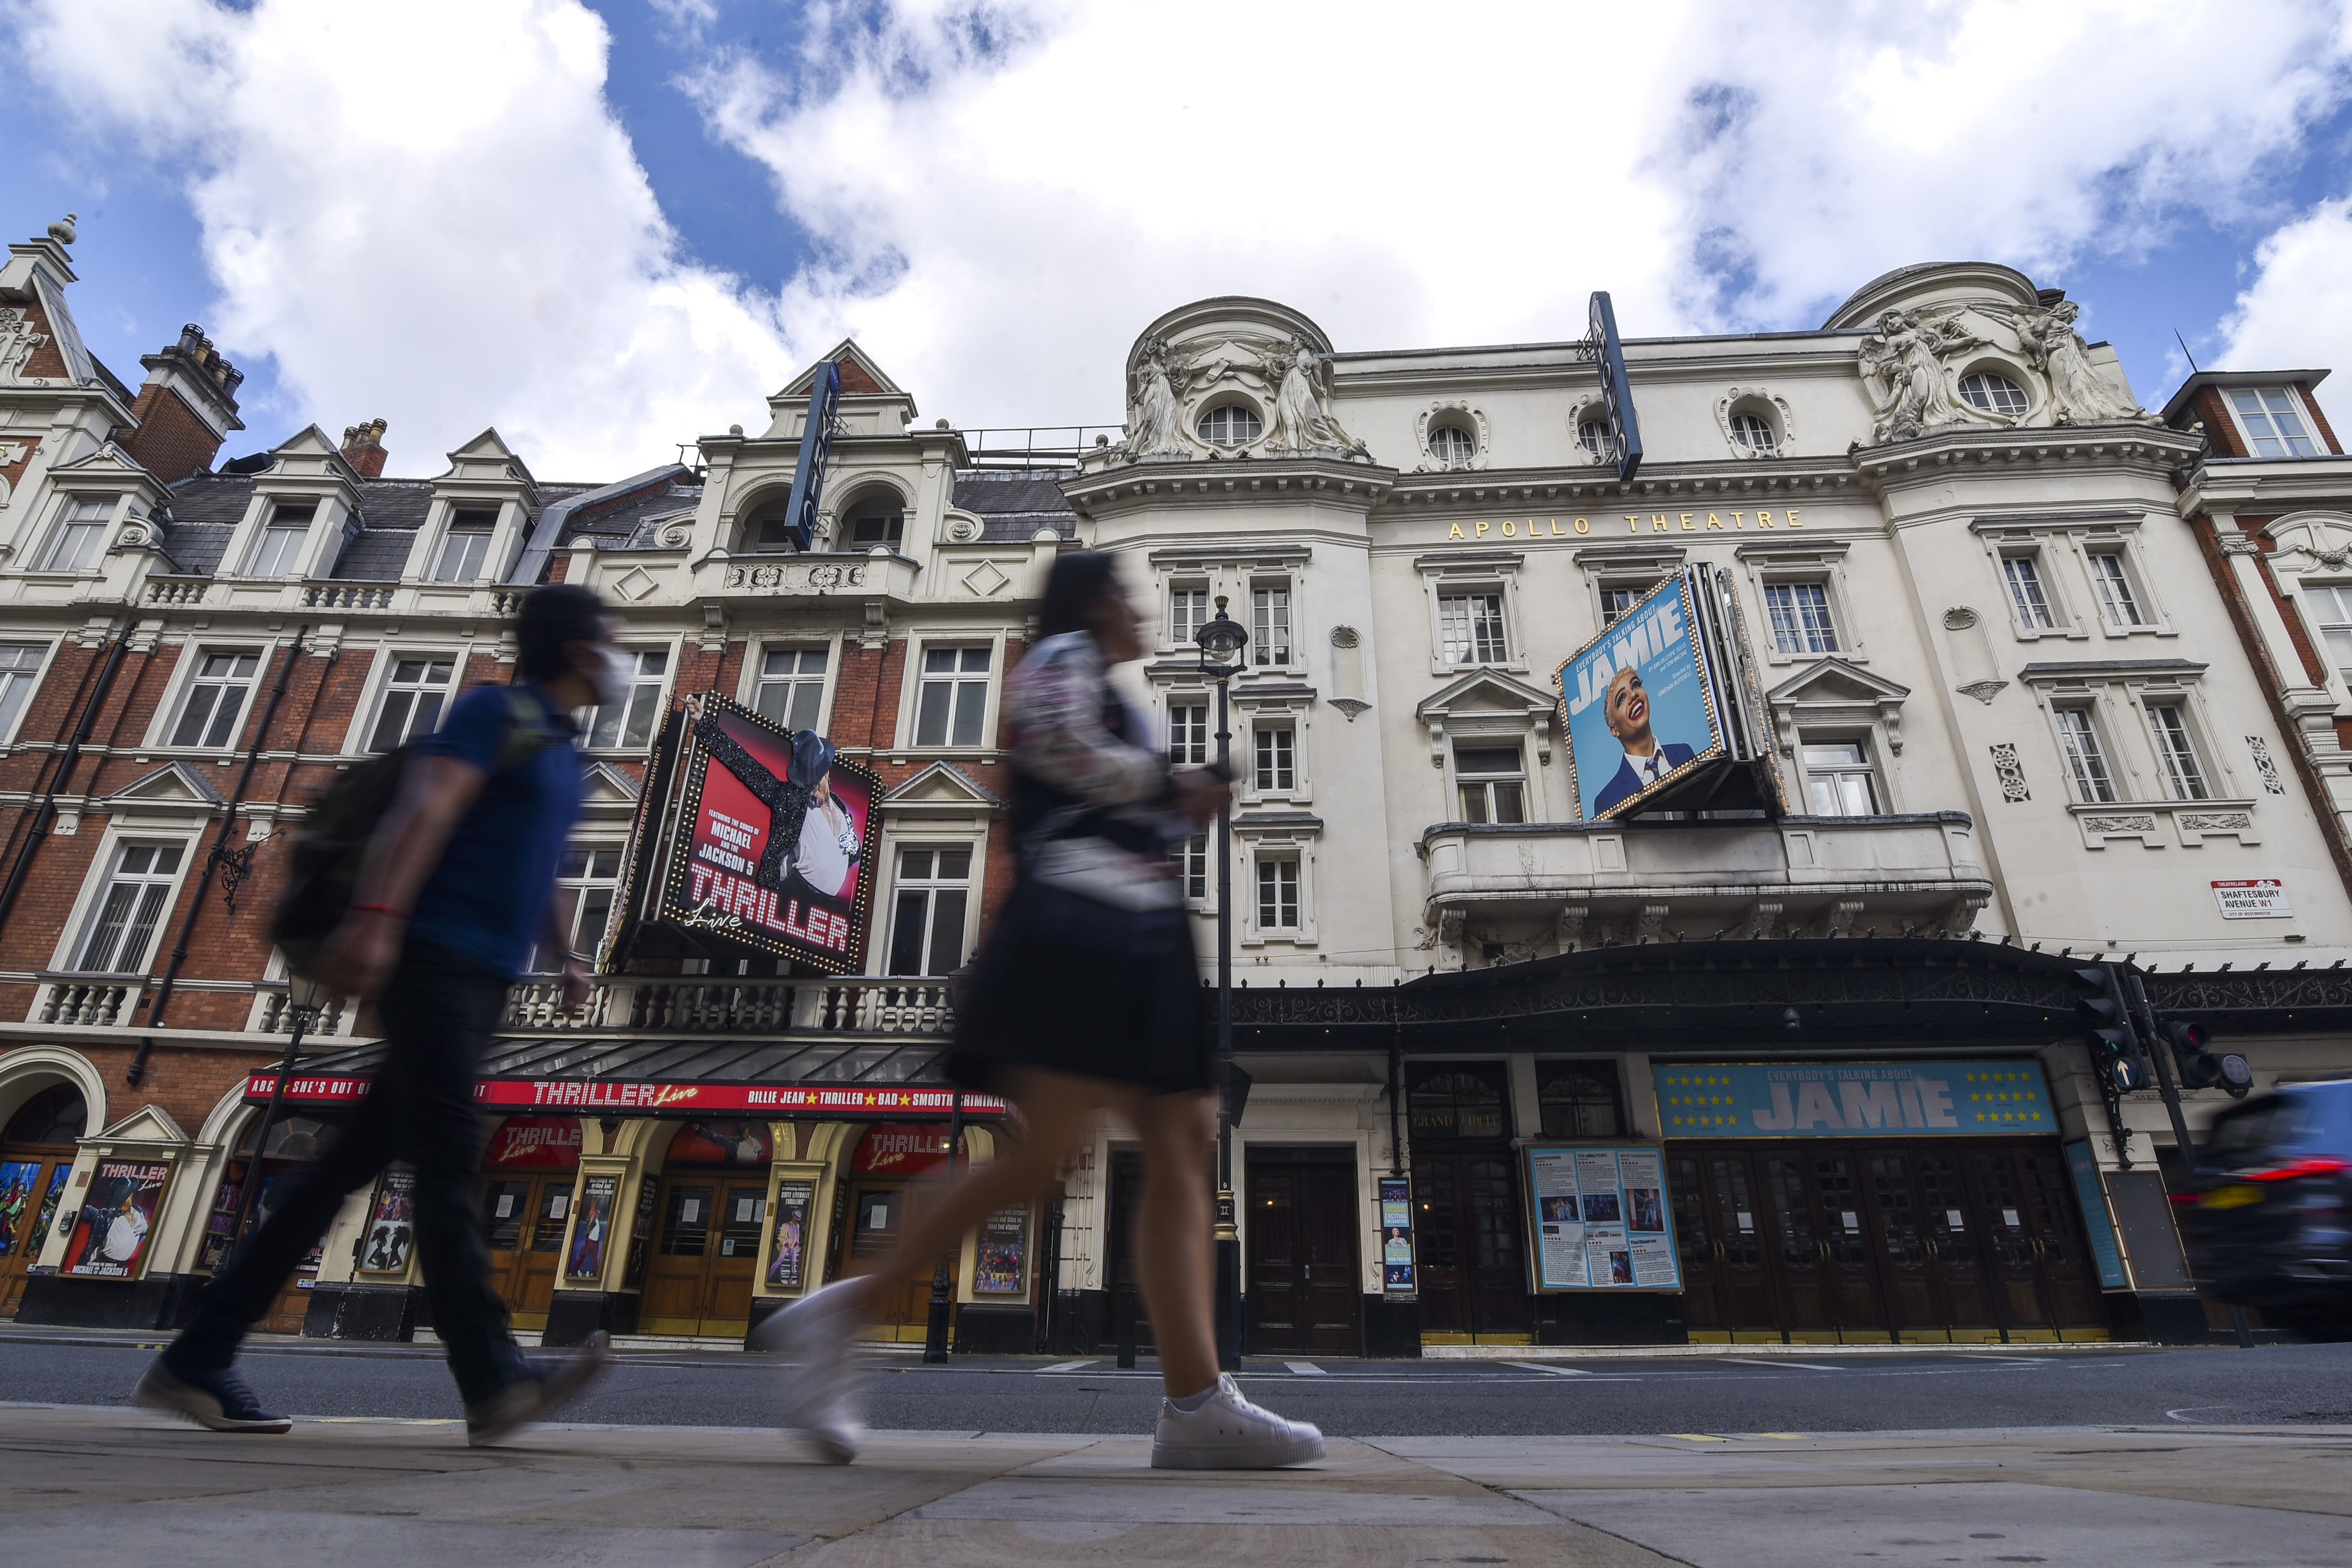 Theaters in the West End are closed due to the Coronavirus outbreak, in London, Saturday, Aug. 1, 2020. Prime Minister Boris Johnson put some planned measures to ease the U.K.'s lockdown on hold Friday, saying the number of new coronavirus cases in the country is on the rise for the first time since May. He called off plans to allow venues, including casinos, bowling alleys and skating rinks, to open from Saturday, Aug. 1. (AP Photo/Alberto Pezzali)